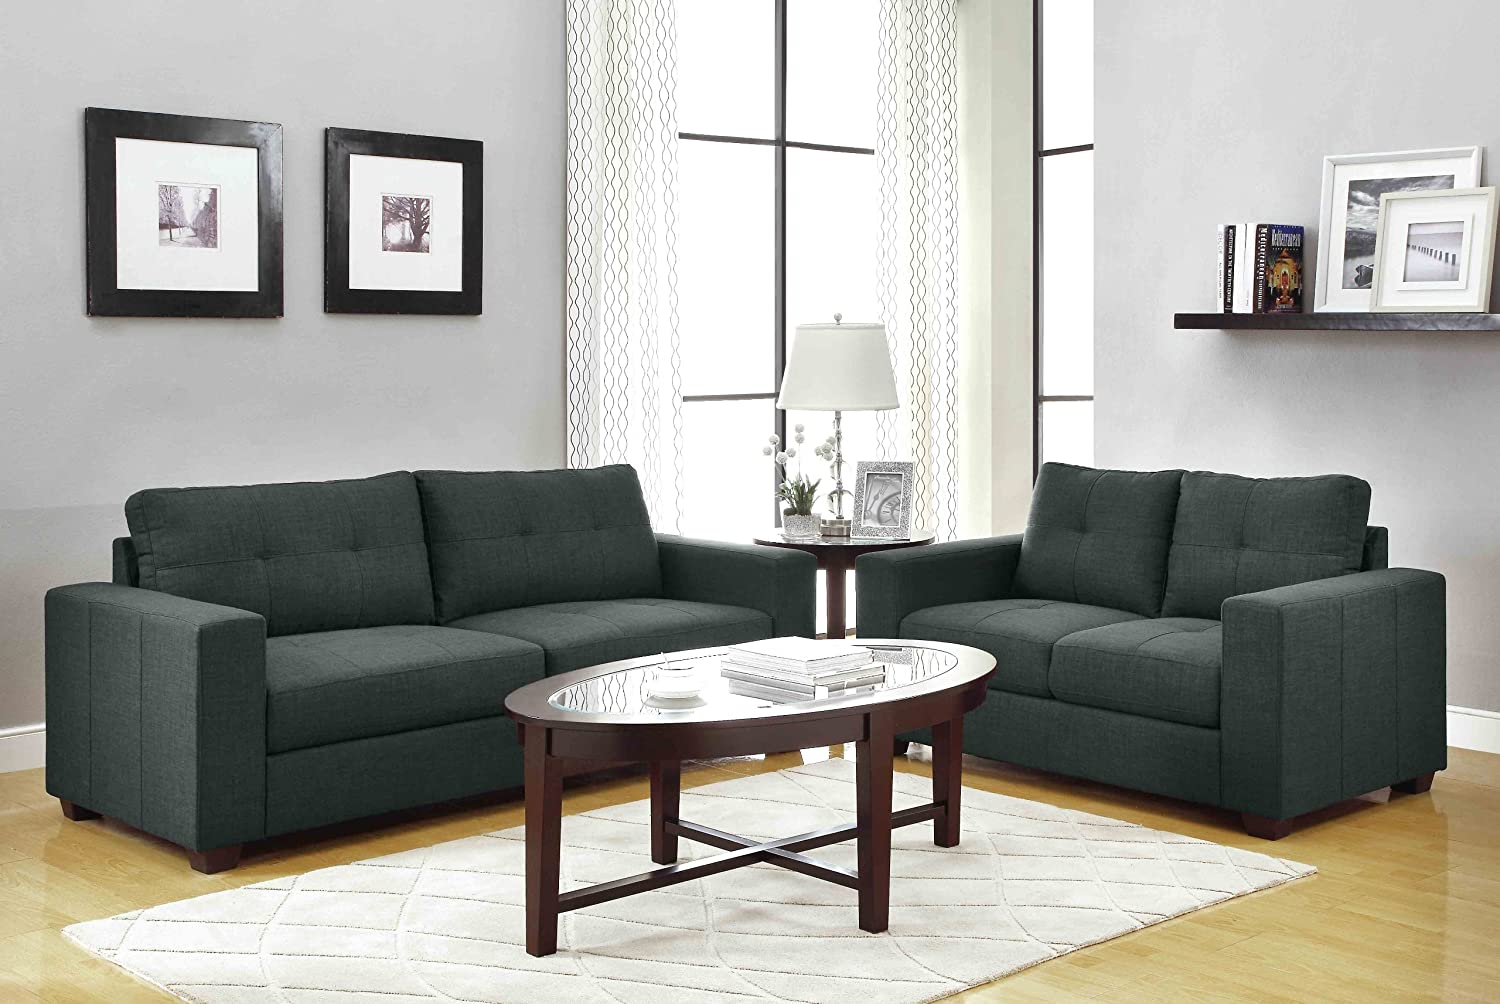 Charmant Amazon.com: Homelegance Ashmont 9639 3 Sofa, Dark Gray Linen Fabric:  Kitchen U0026 Dining